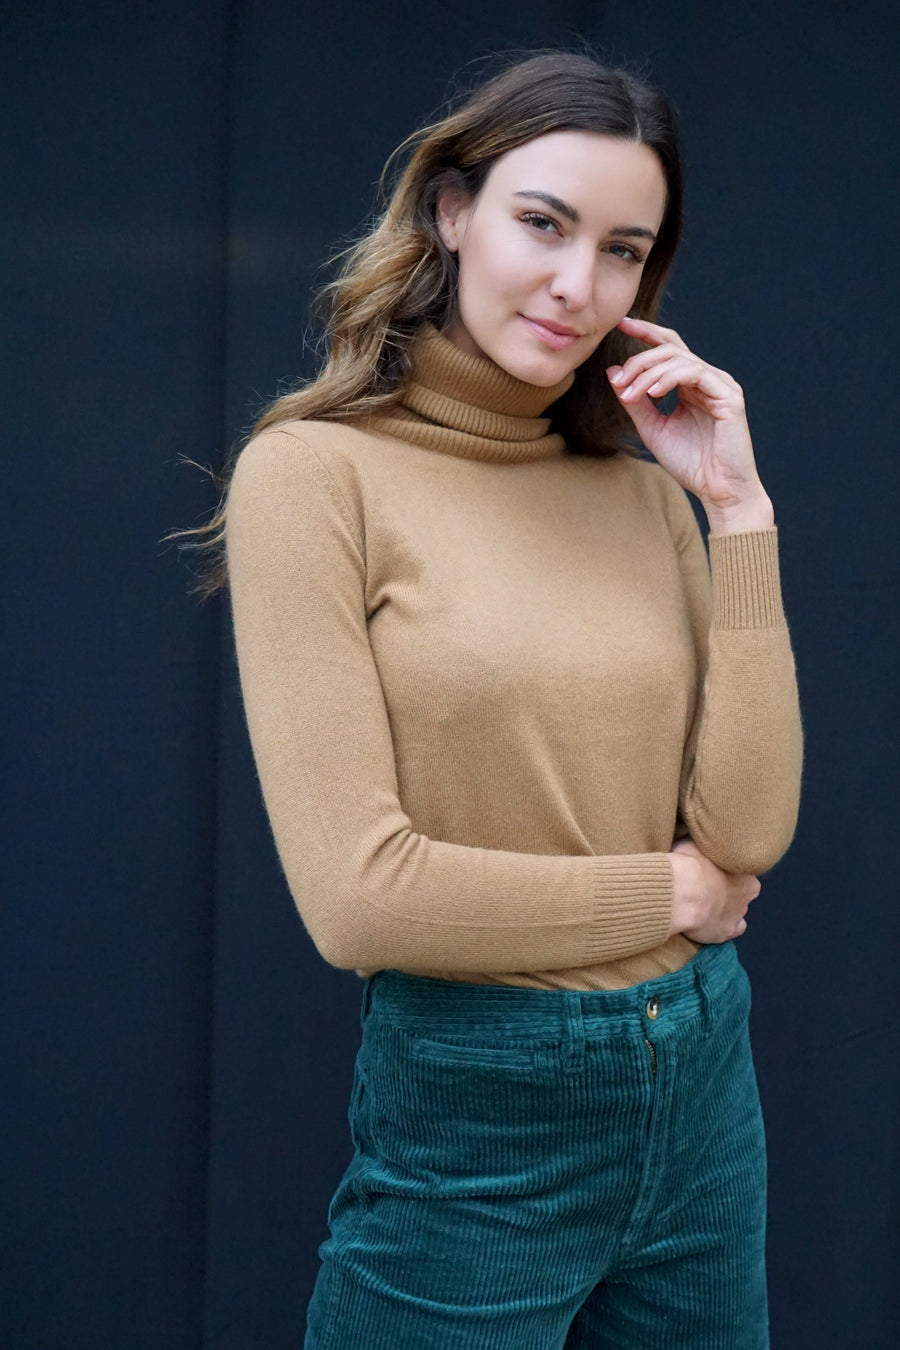 pine cashmere women 100% cashmere turtleneck camel color